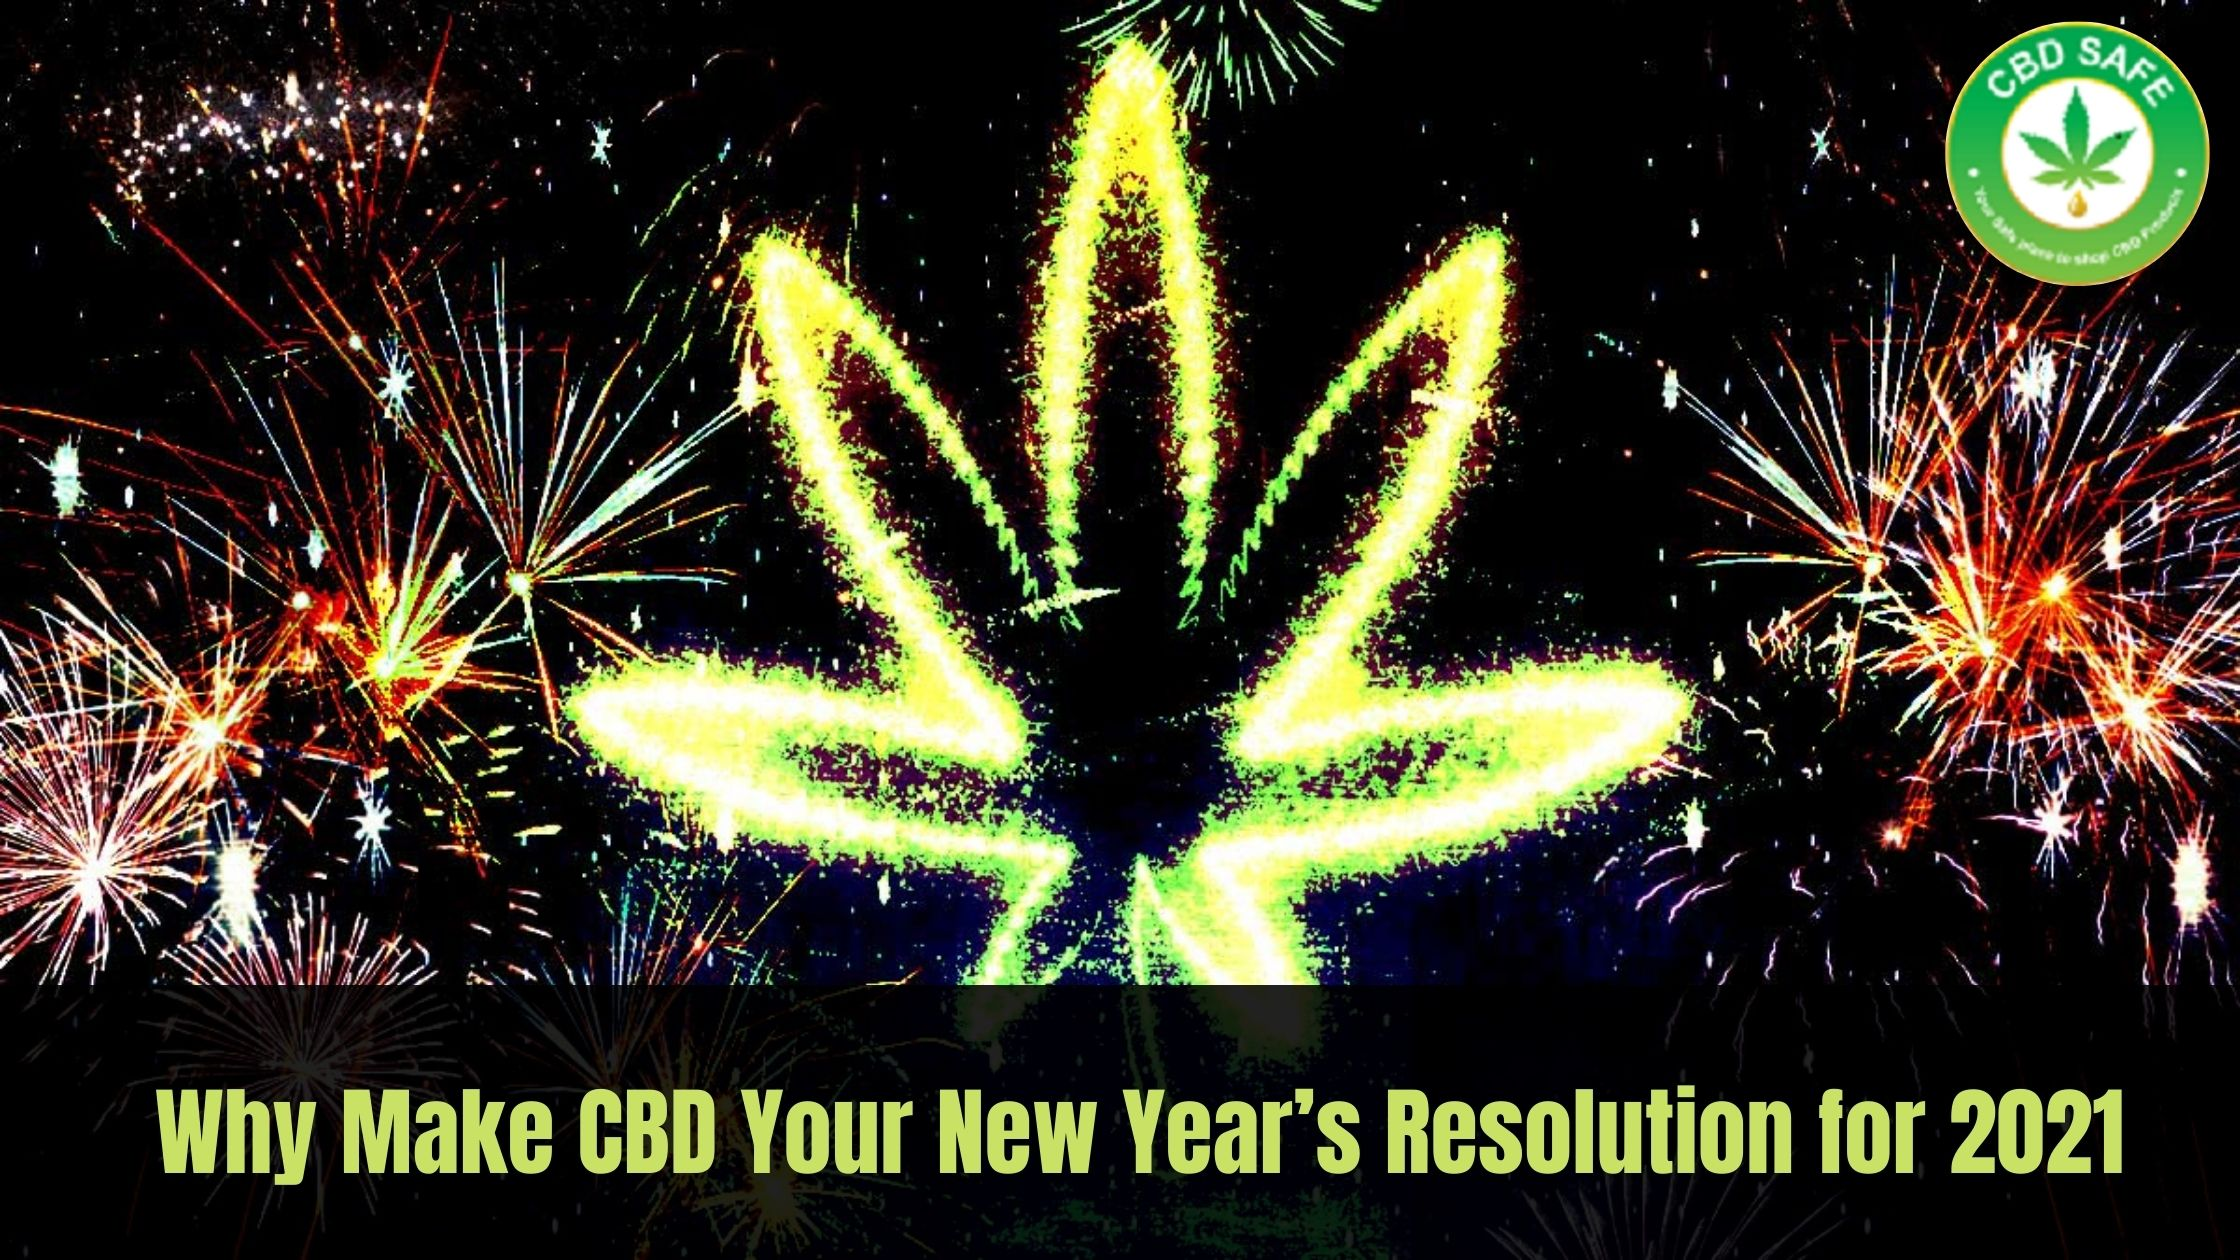 Why Make CBD Your New Year's Resolutions for 2021